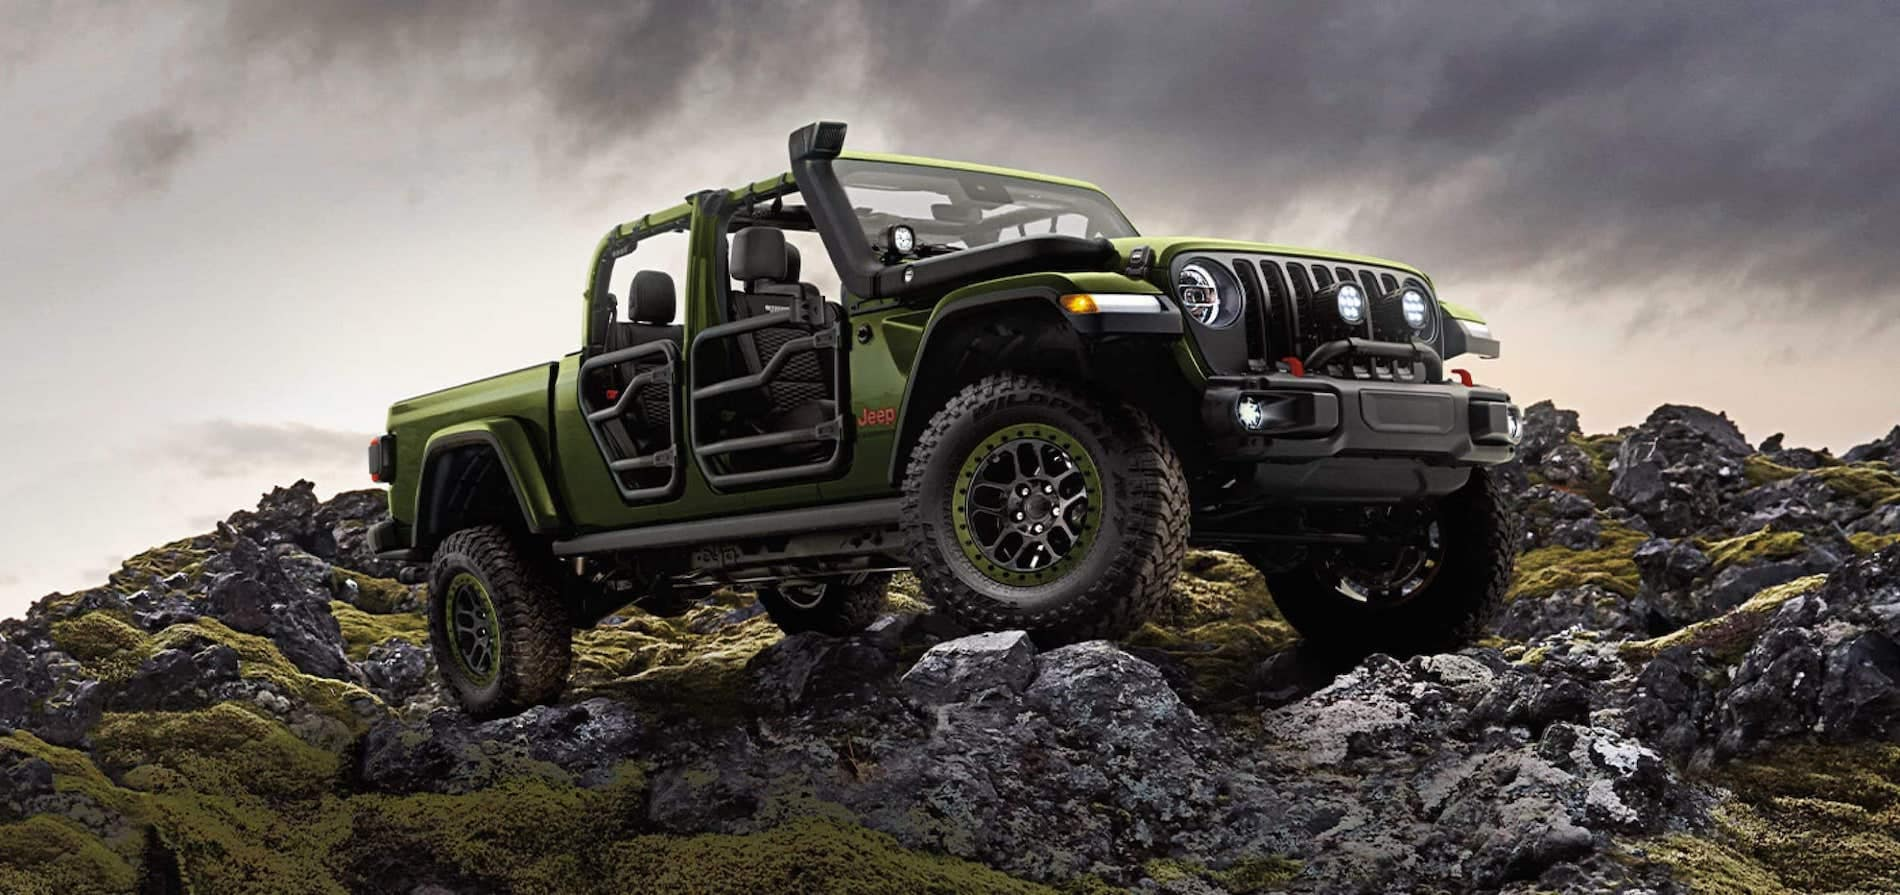 2021 Jeep Gladiator Safety Features Winchester, VA